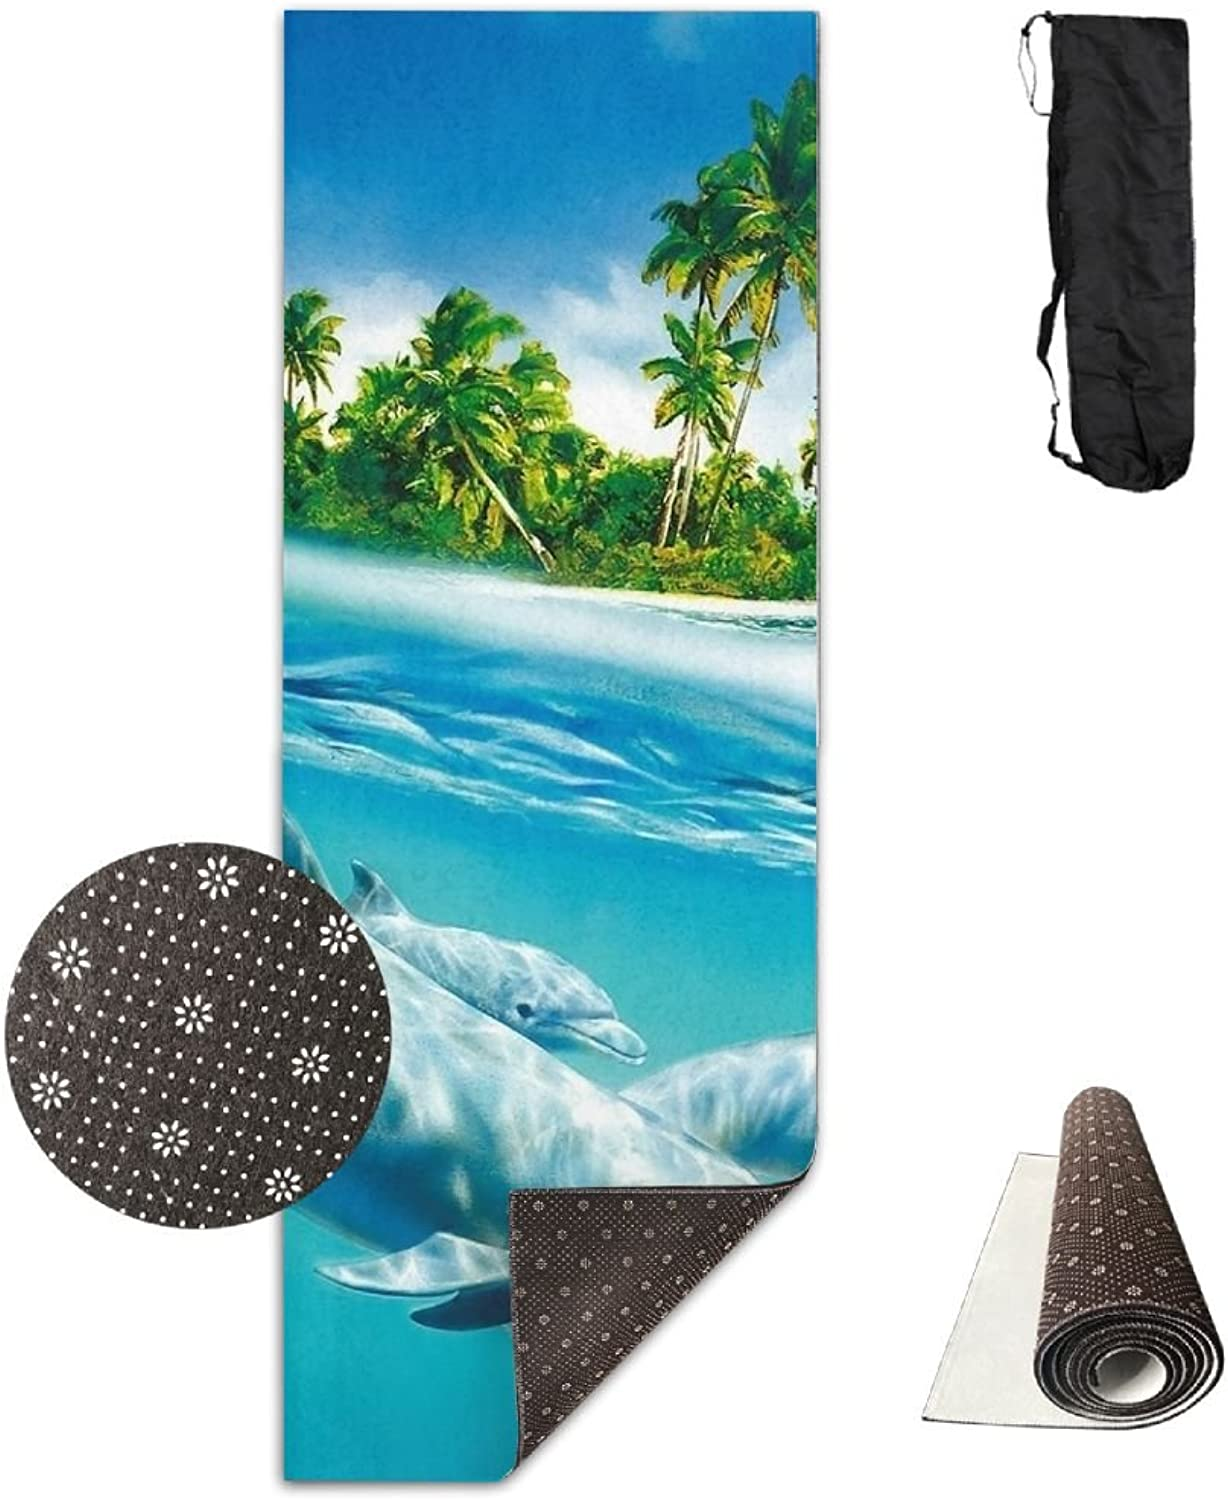 Gym Mat Dolphin Straw With Green Palm Fitness High Density AntiTear Exercise Yoga Mat With Carrying Bag For Exercise,Pilates